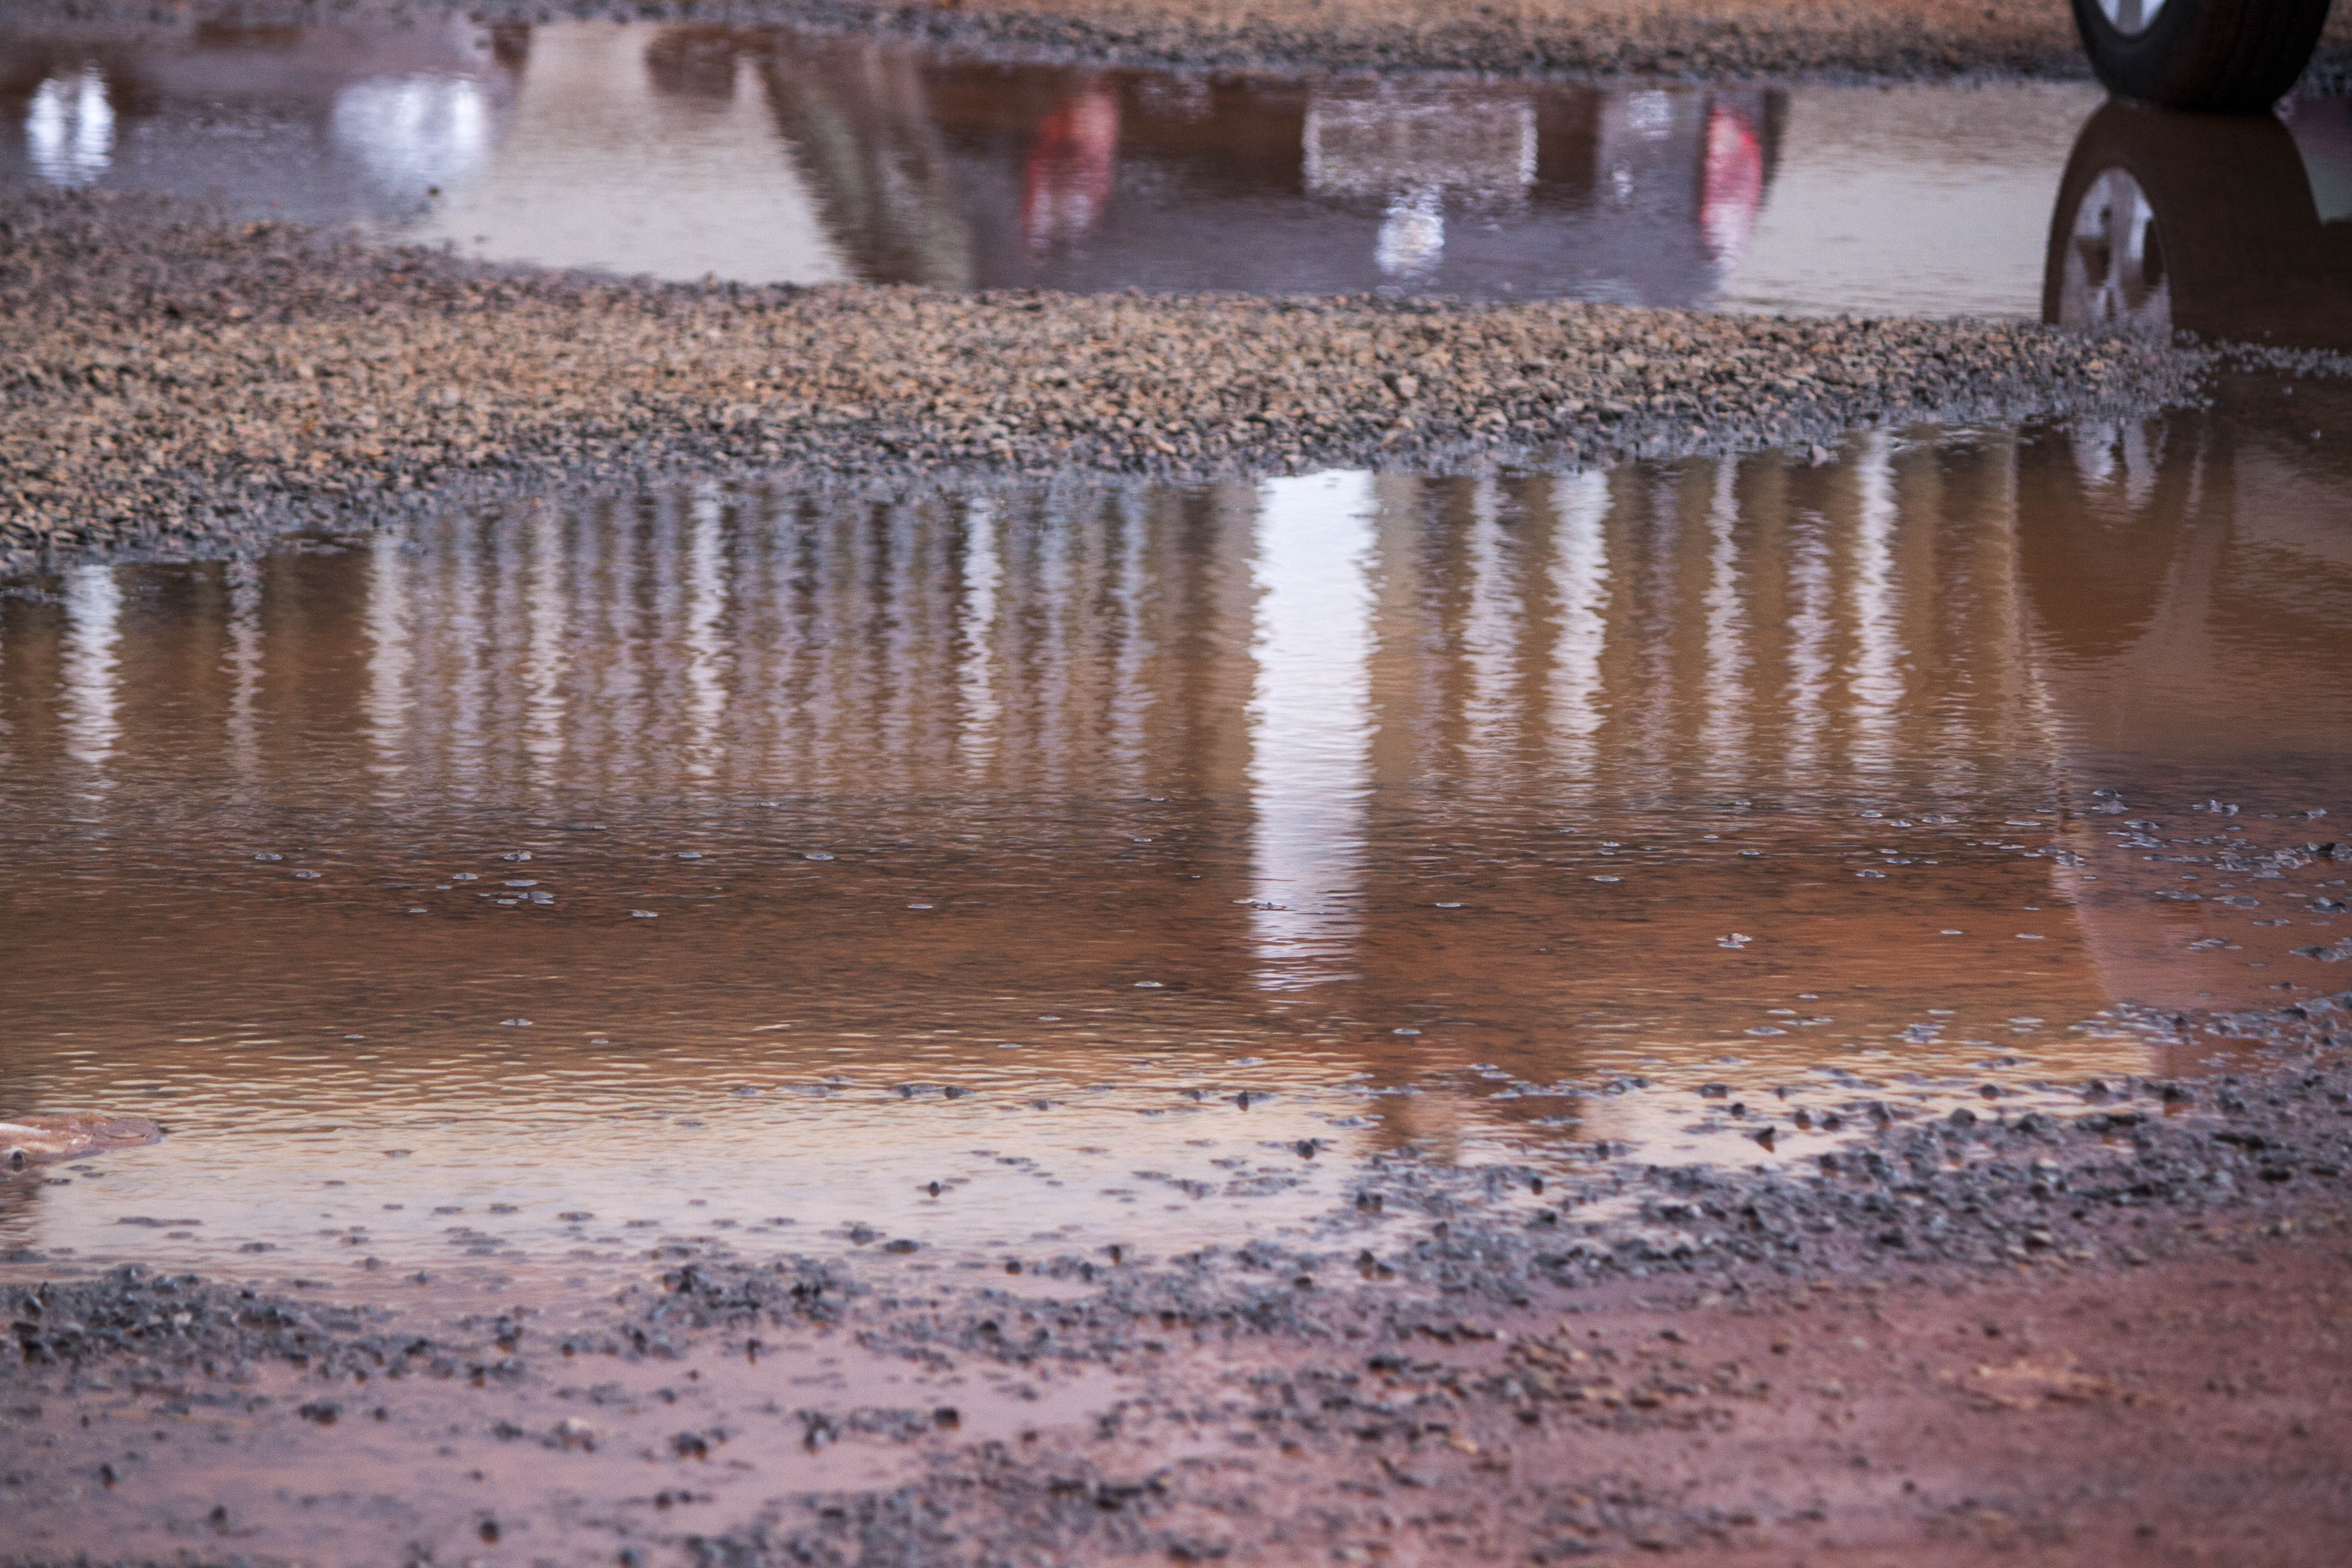 Water puddle in parking lot photo